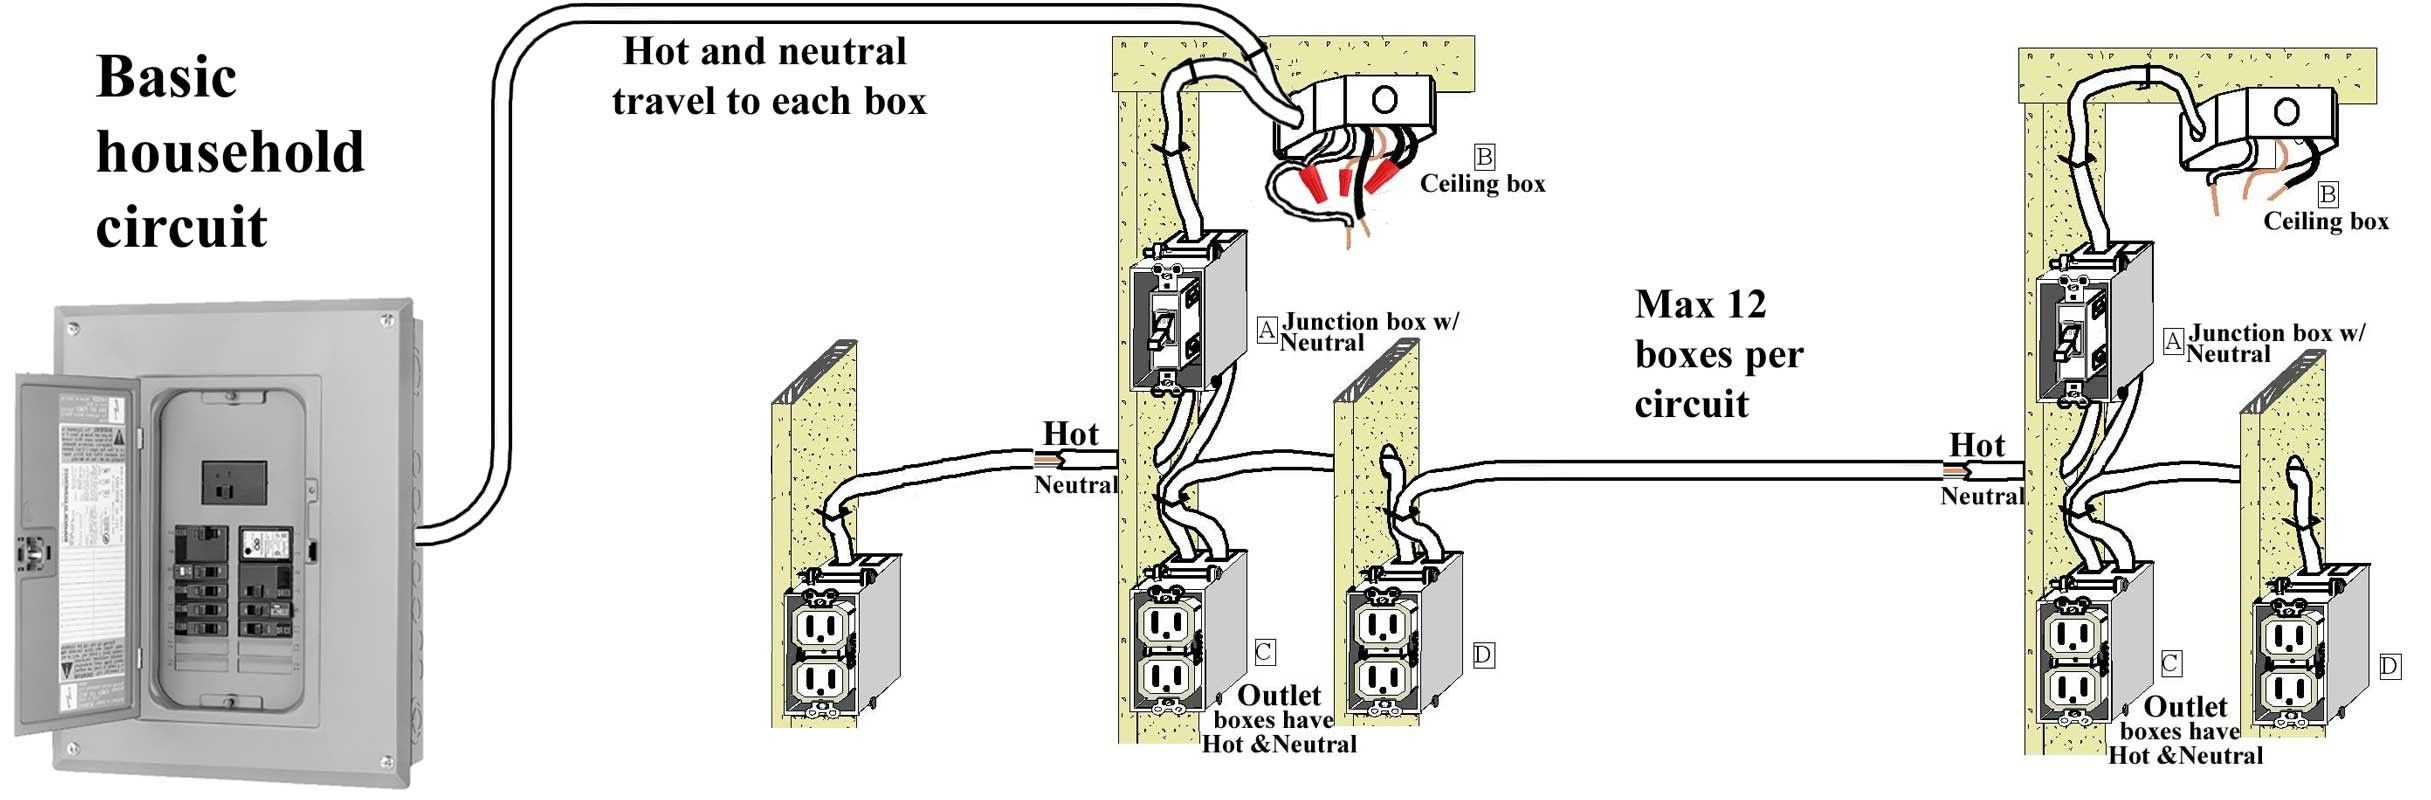 New House Electrical Wiring Basics Diagram Wiringdiagram Diagramming Diagramm Visuals Vis Electrical Circuit Diagram Basic Electrical Wiring House Wiring